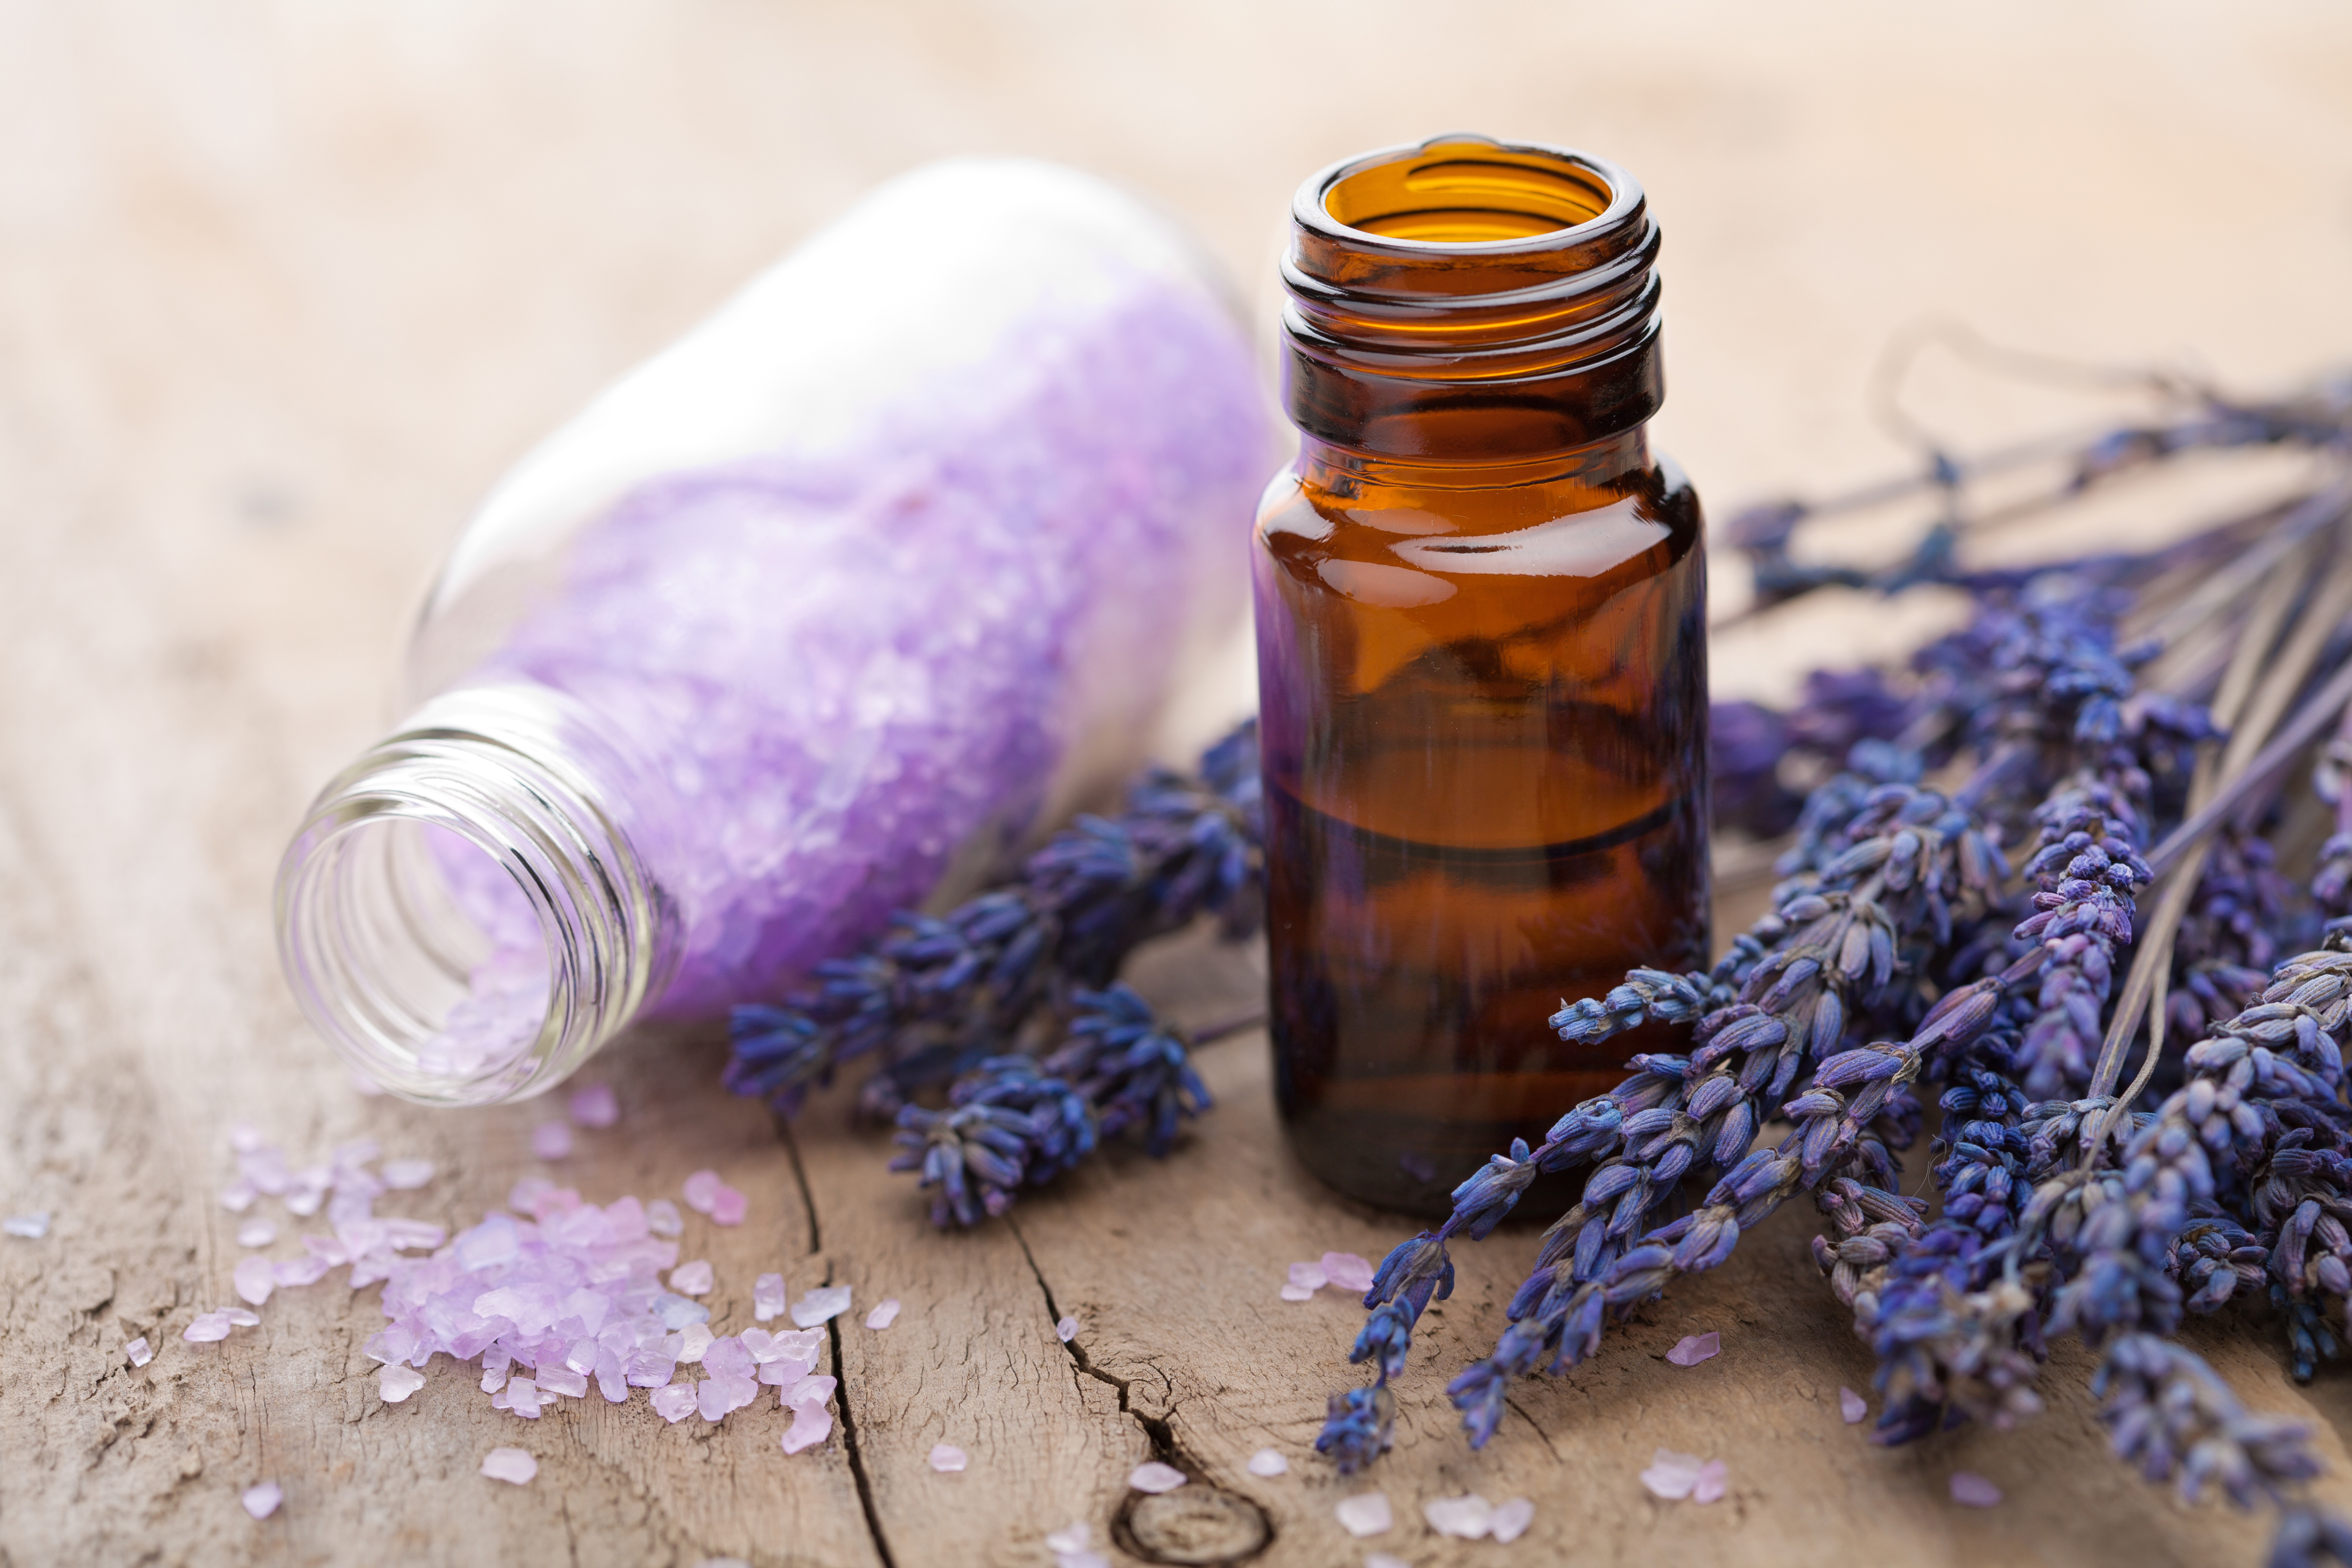 sprigs of purple lavendar with a small bottle of lavendar crystals and brown bottle of lavendar oil